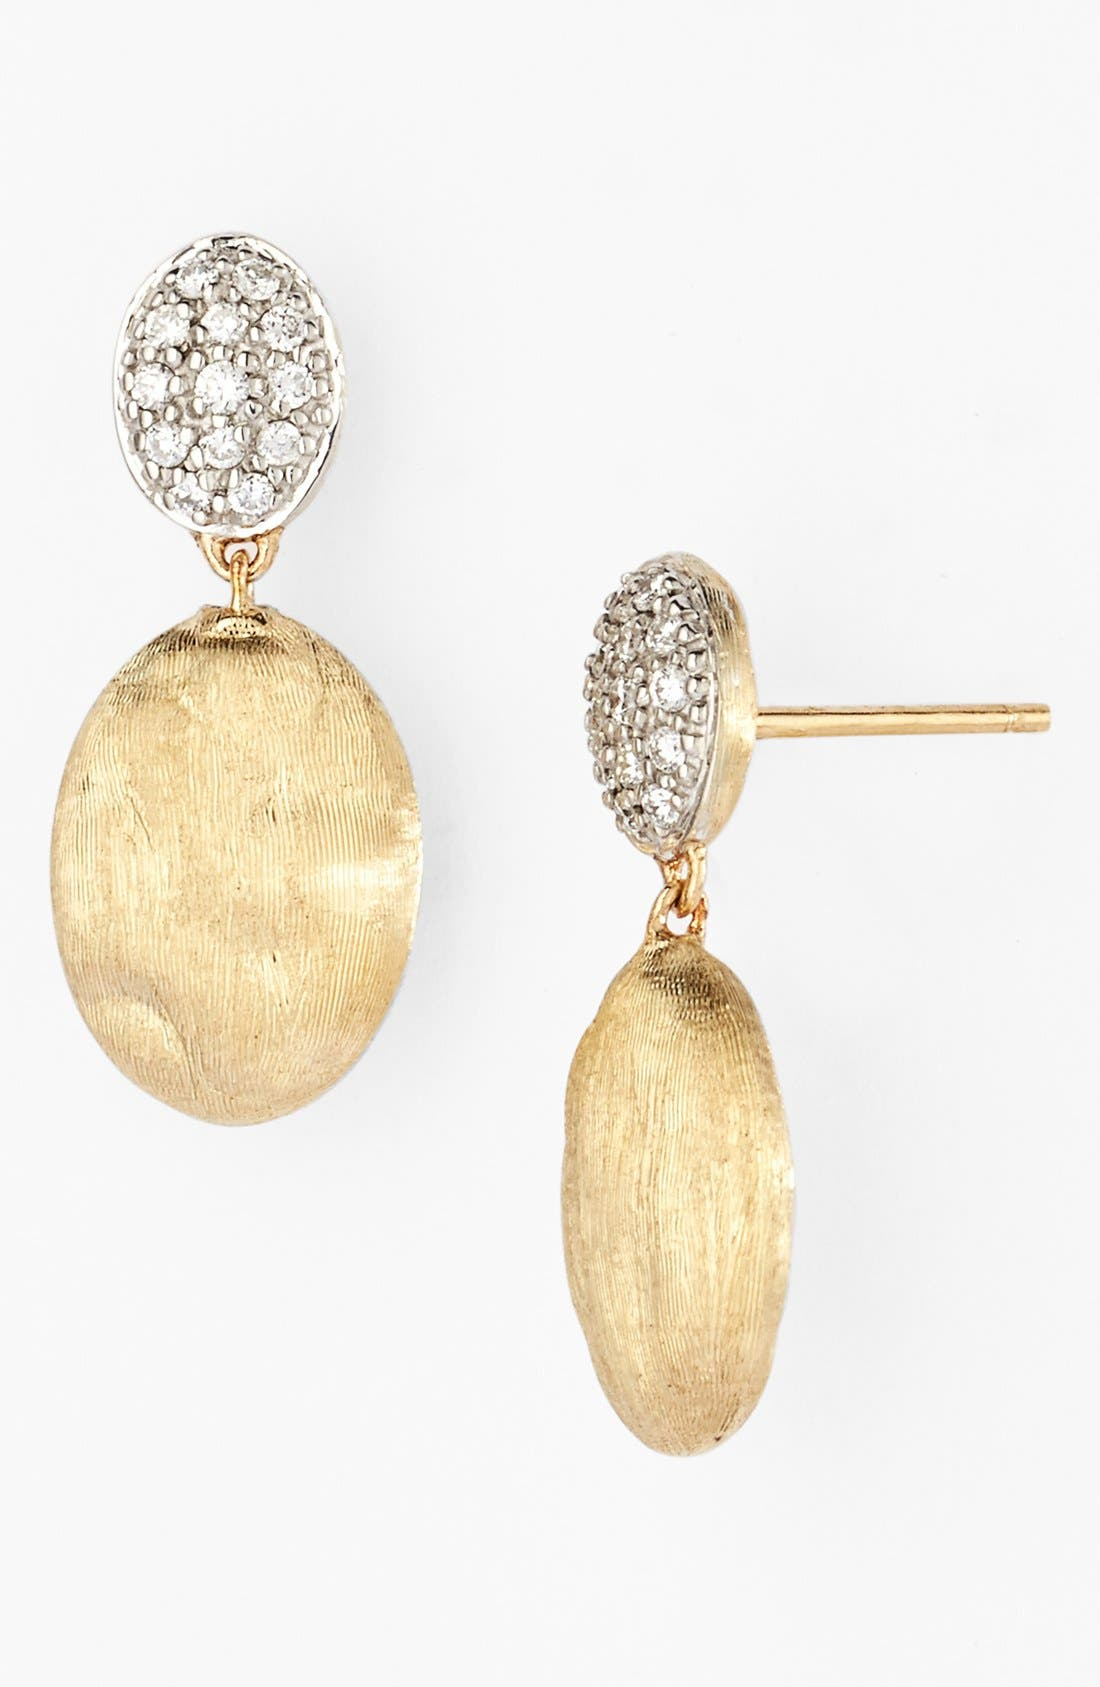 MARCO BICEGO Siviglia Diamond Drop Earrings